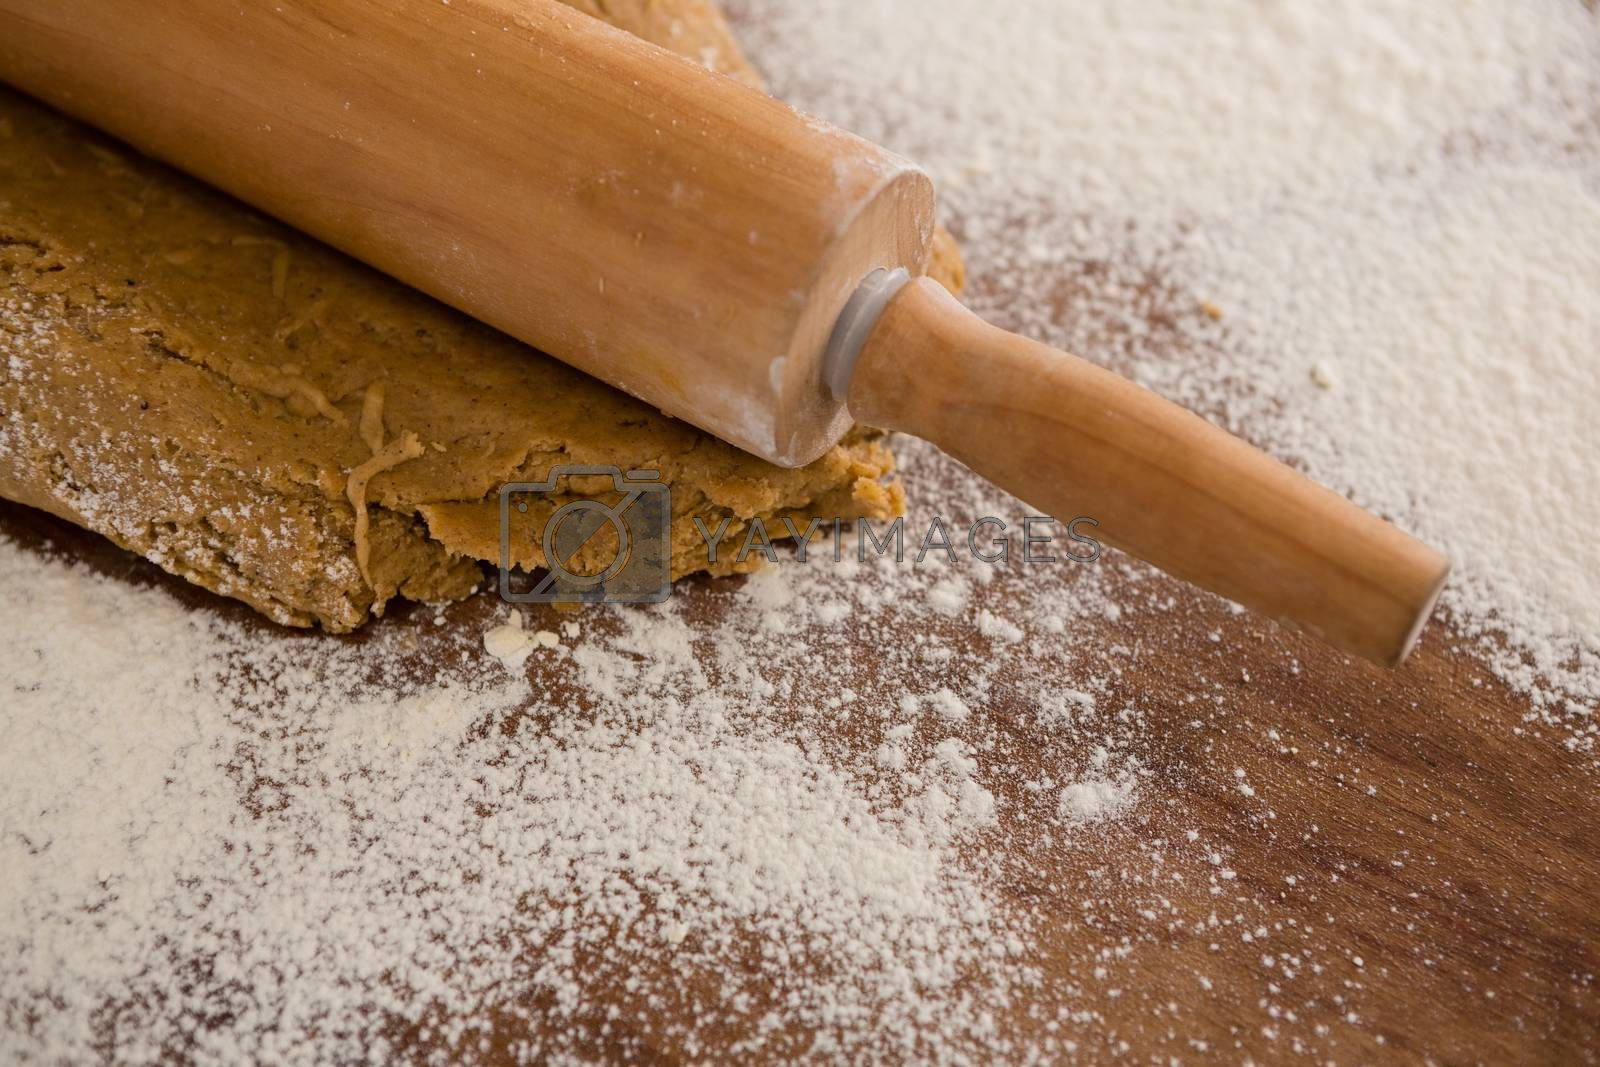 Flattening dough with rolling pin with sprinkled over flour on a wooden table by Wavebreakmedia